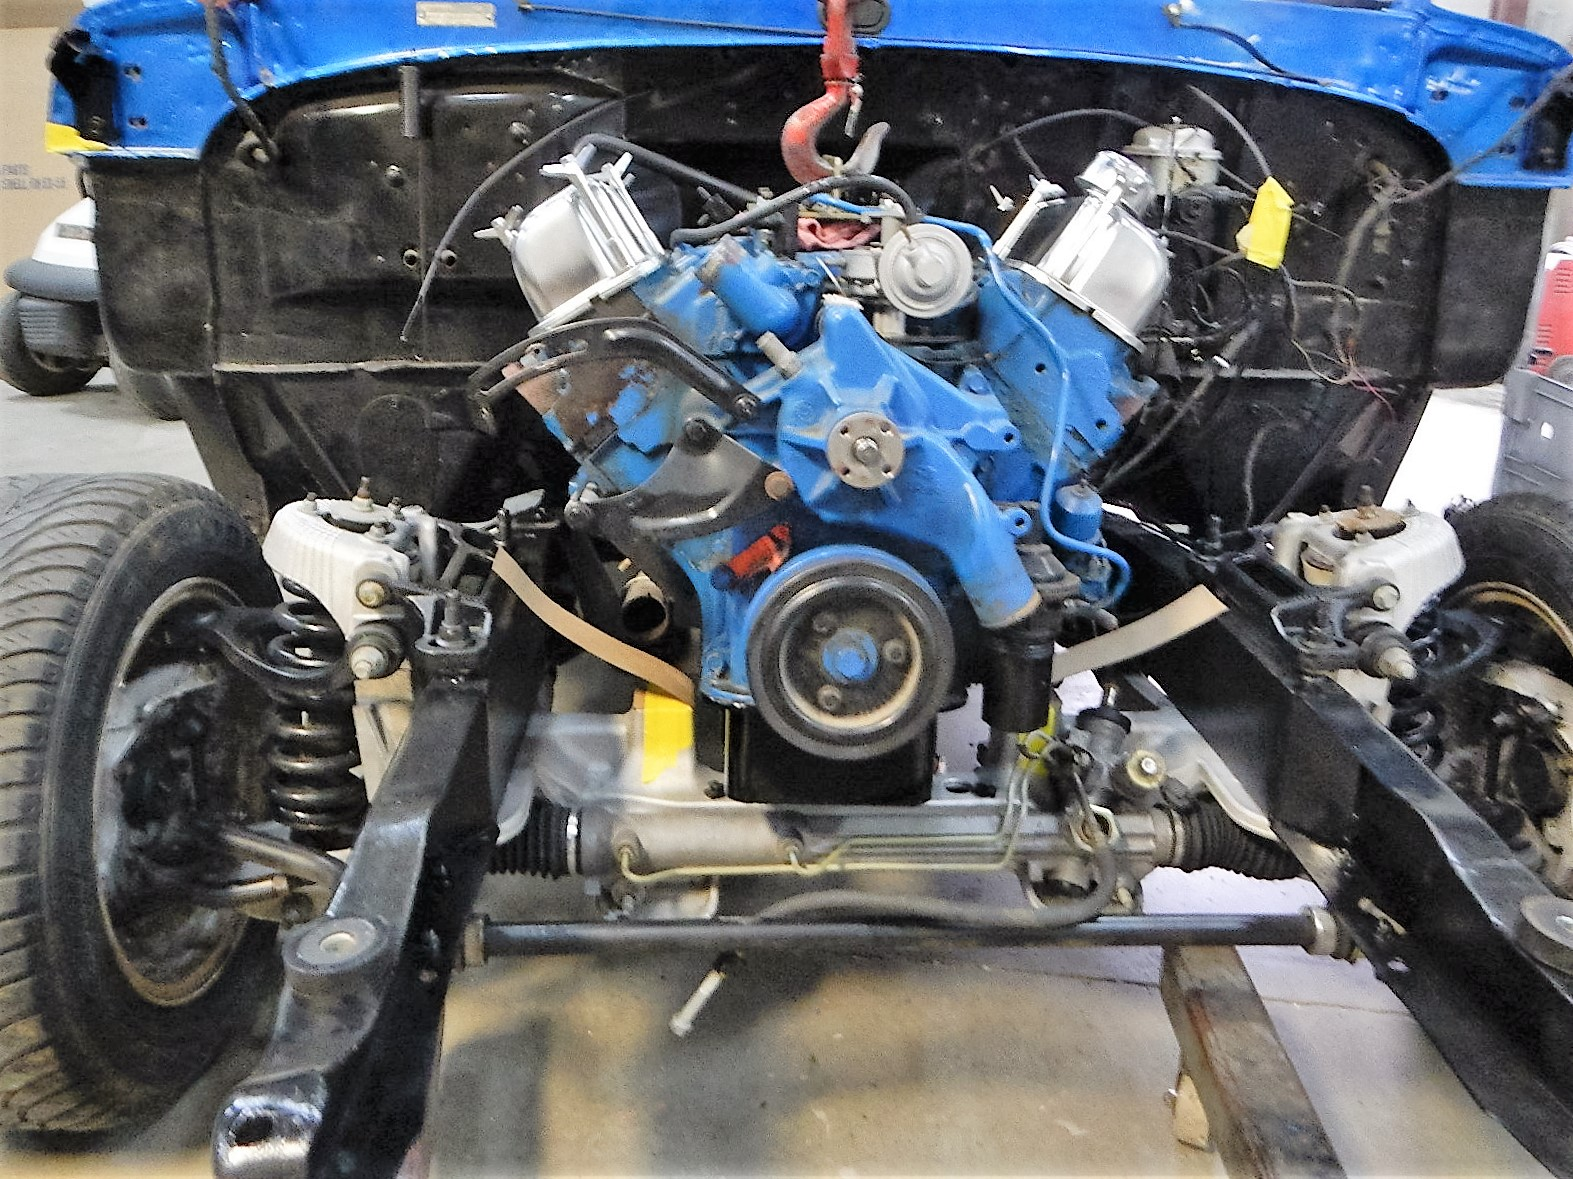 1968 Ford F-100 Front End Swap - Mercury Crown Vic  085.jpg